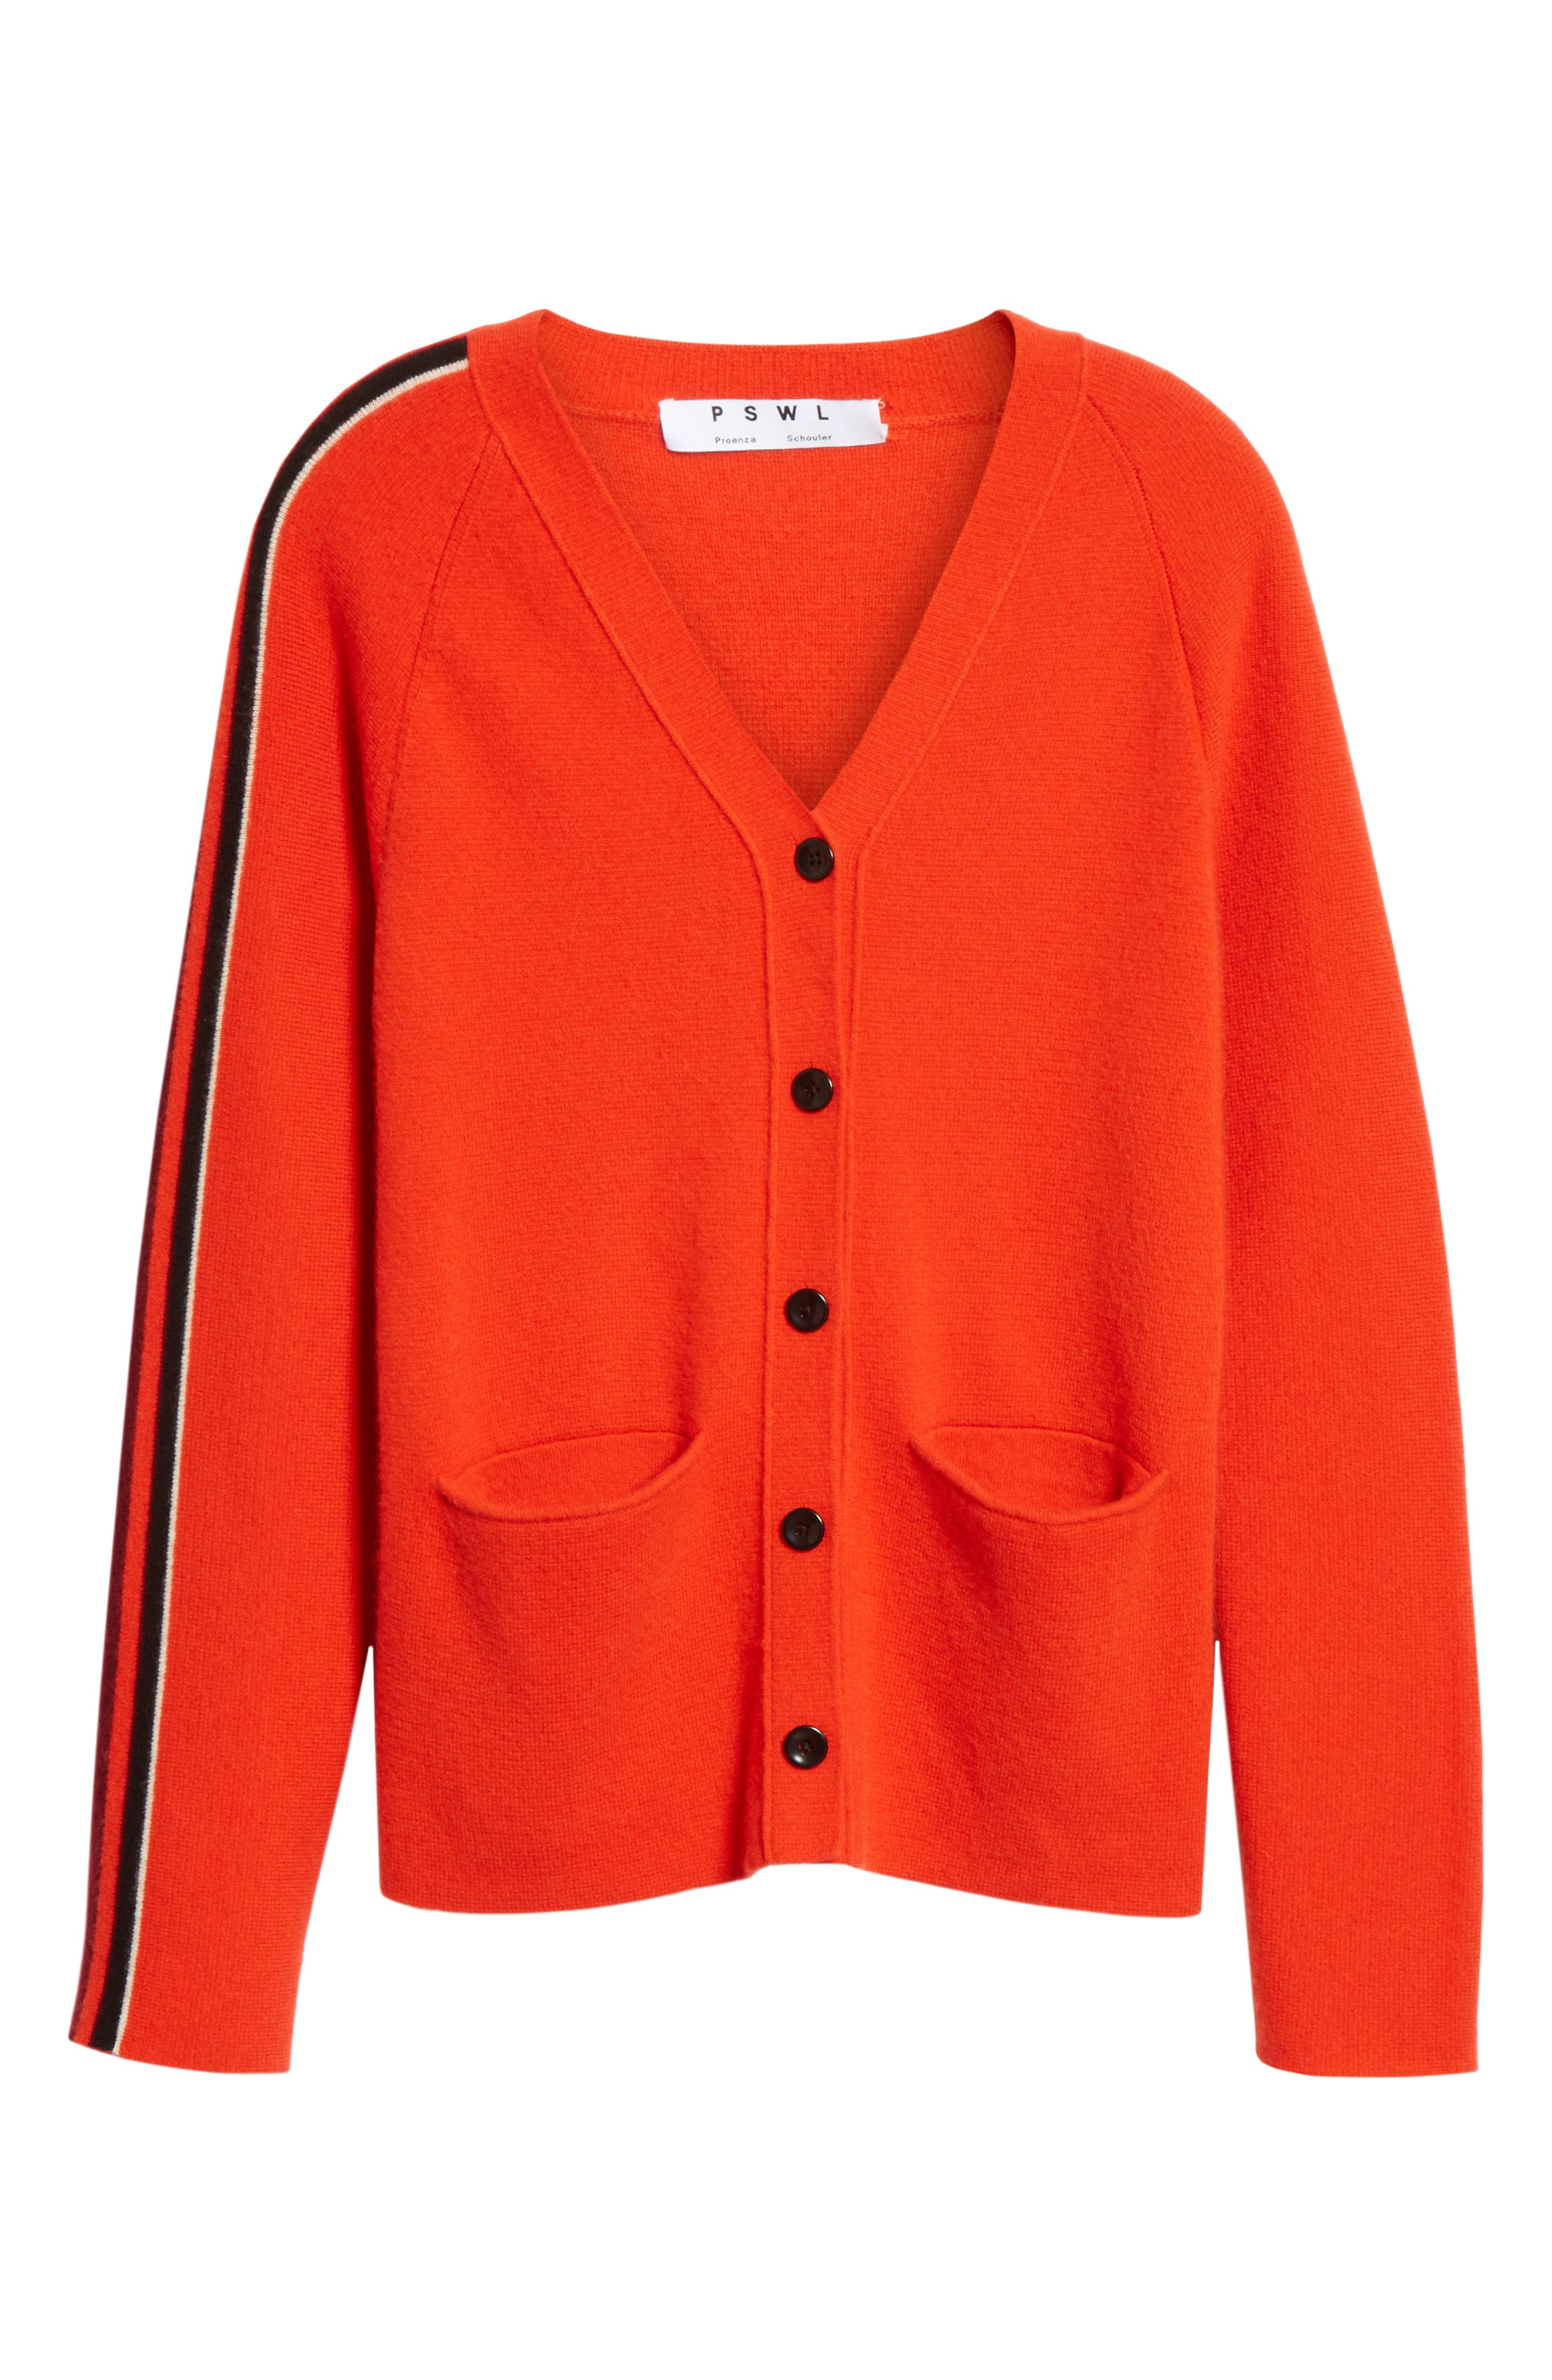 PROENZA SCHOULER, PSWL Stripe Sleeve Merino Wool & Cashmere Cardigan, Alternate thumbnail 6, color, RED COMBO